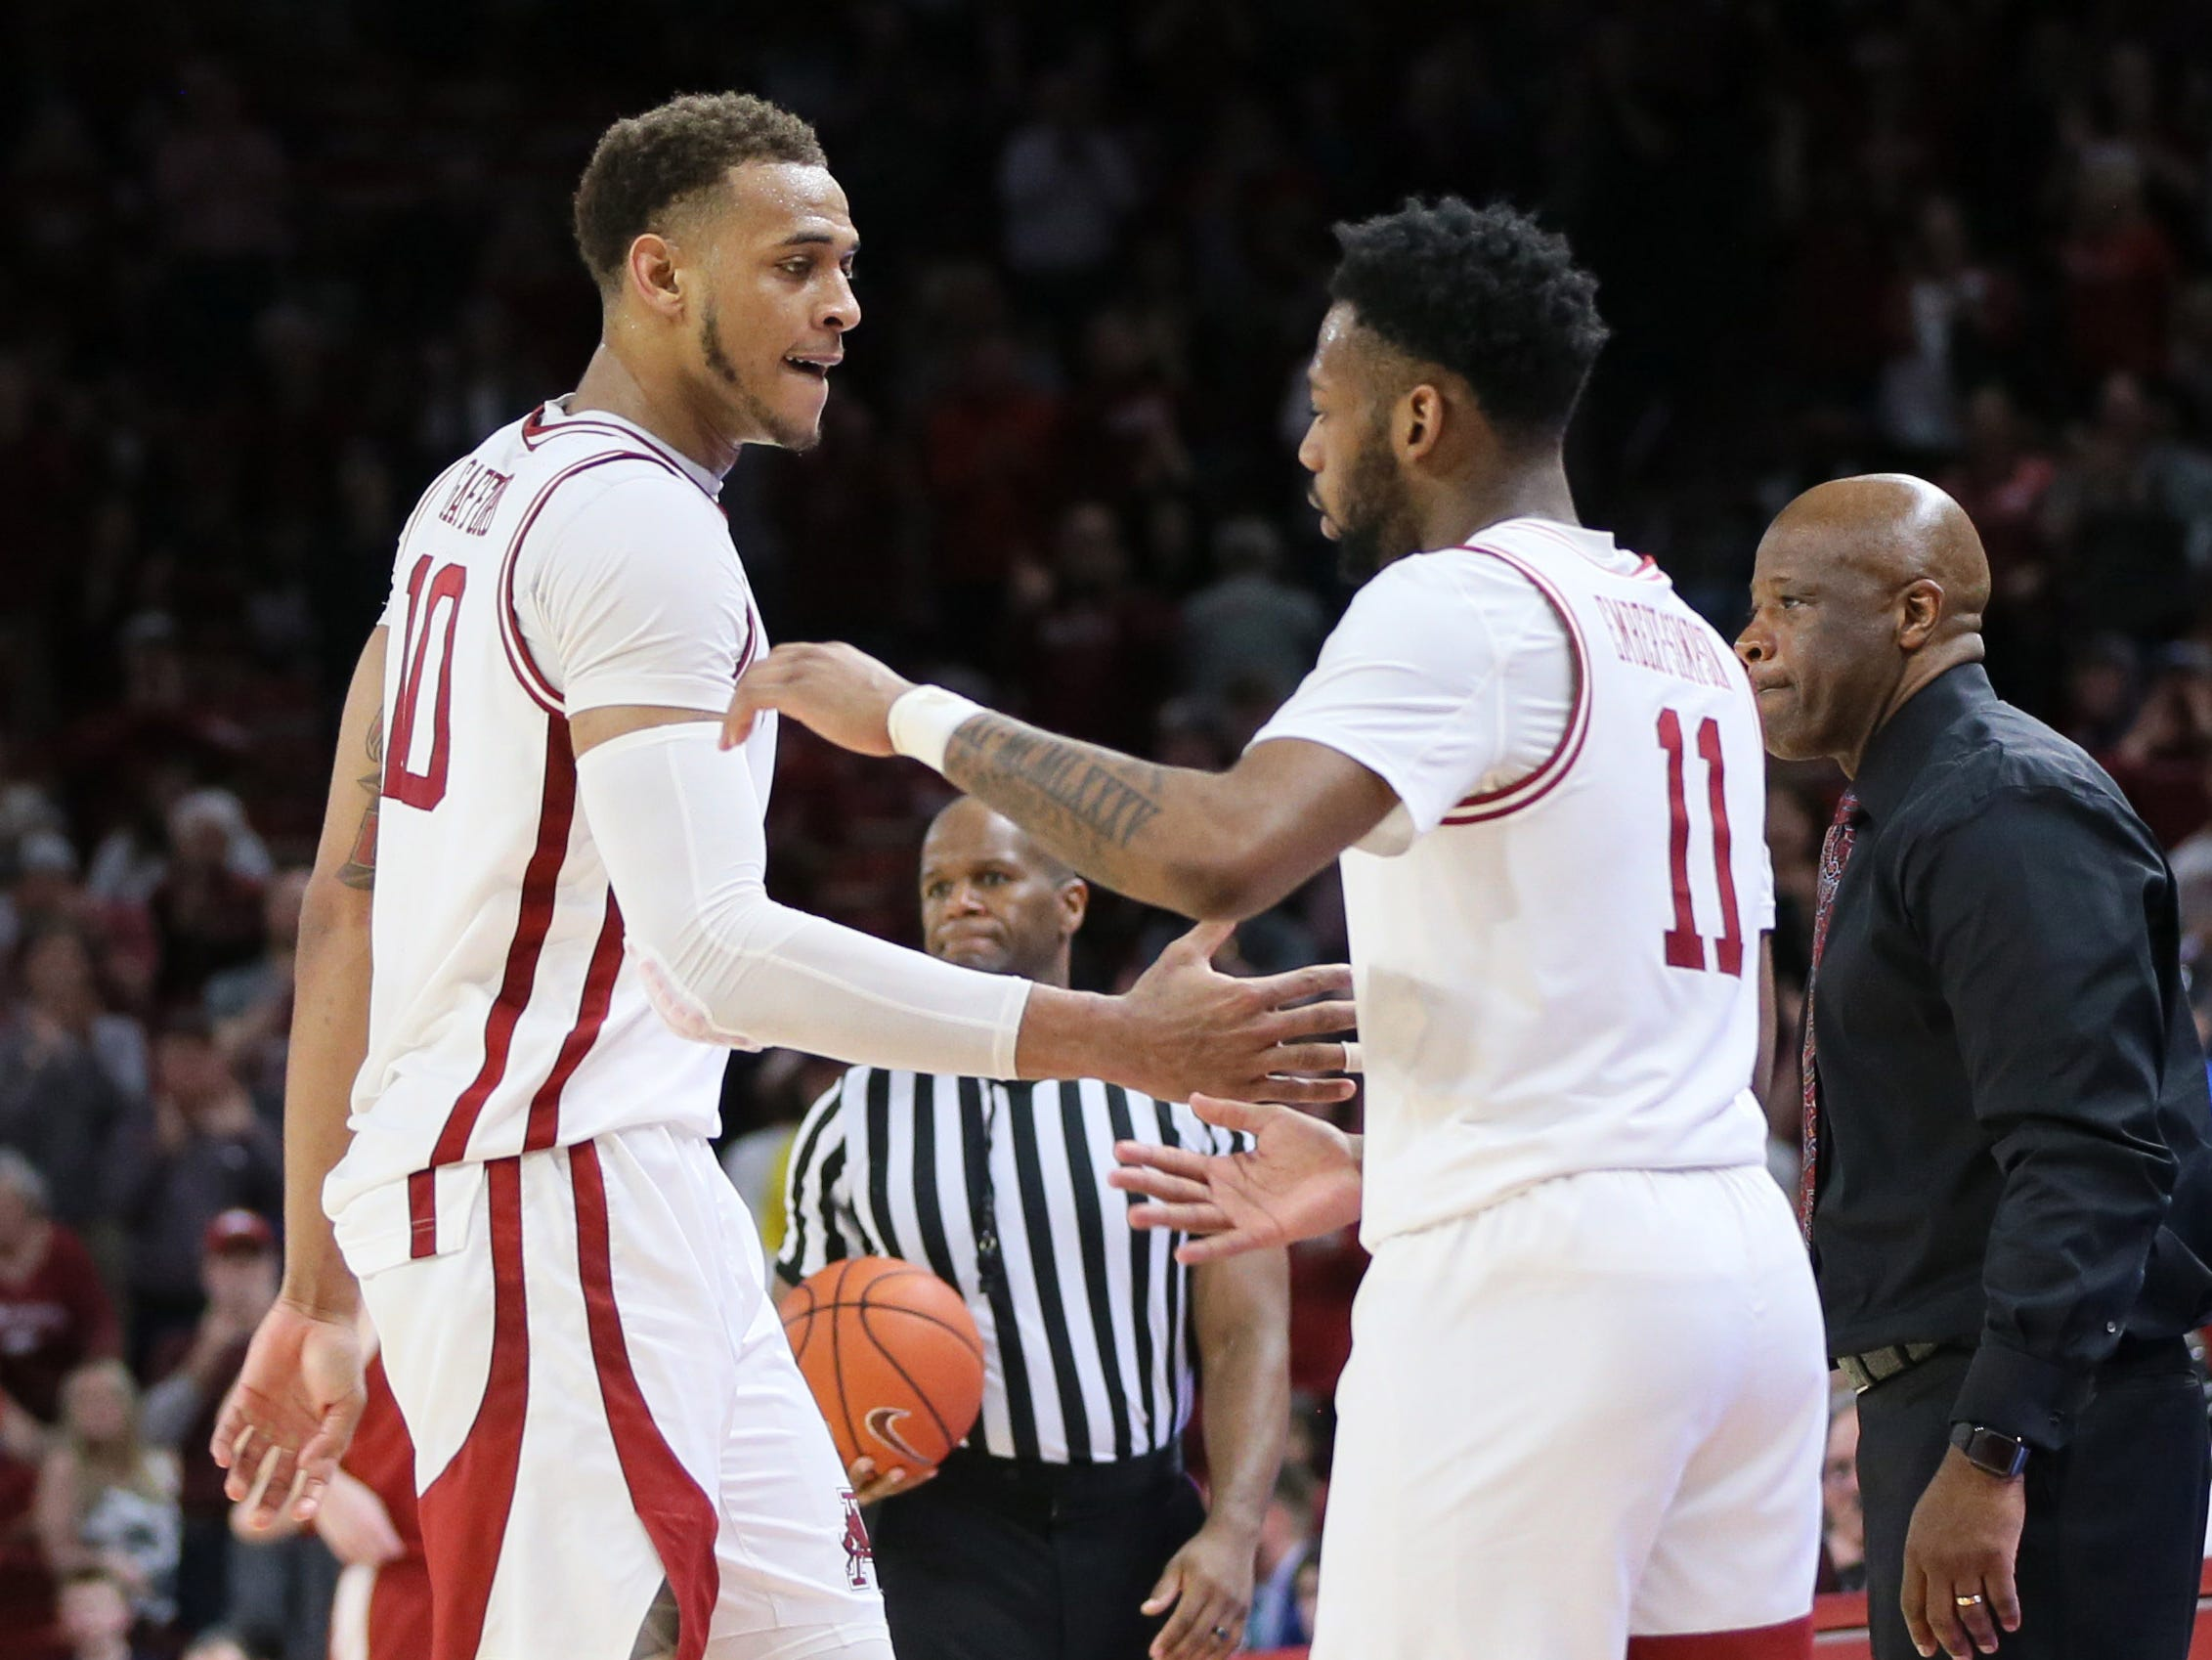 Mar 9, 2019; Fayetteville, AR, USA; Arkansas Razorbacks forward Daniel Gafford (10) celebrates with guard Keyshawn Embery Simpson (11) as Gafford leaves the court in the final minutes of the game against the Alabama Crimson Tide at Bud Walton Arena. Arkansas won 82-70. Mandatory Credit: Nelson Chenault-USA TODAY Sports